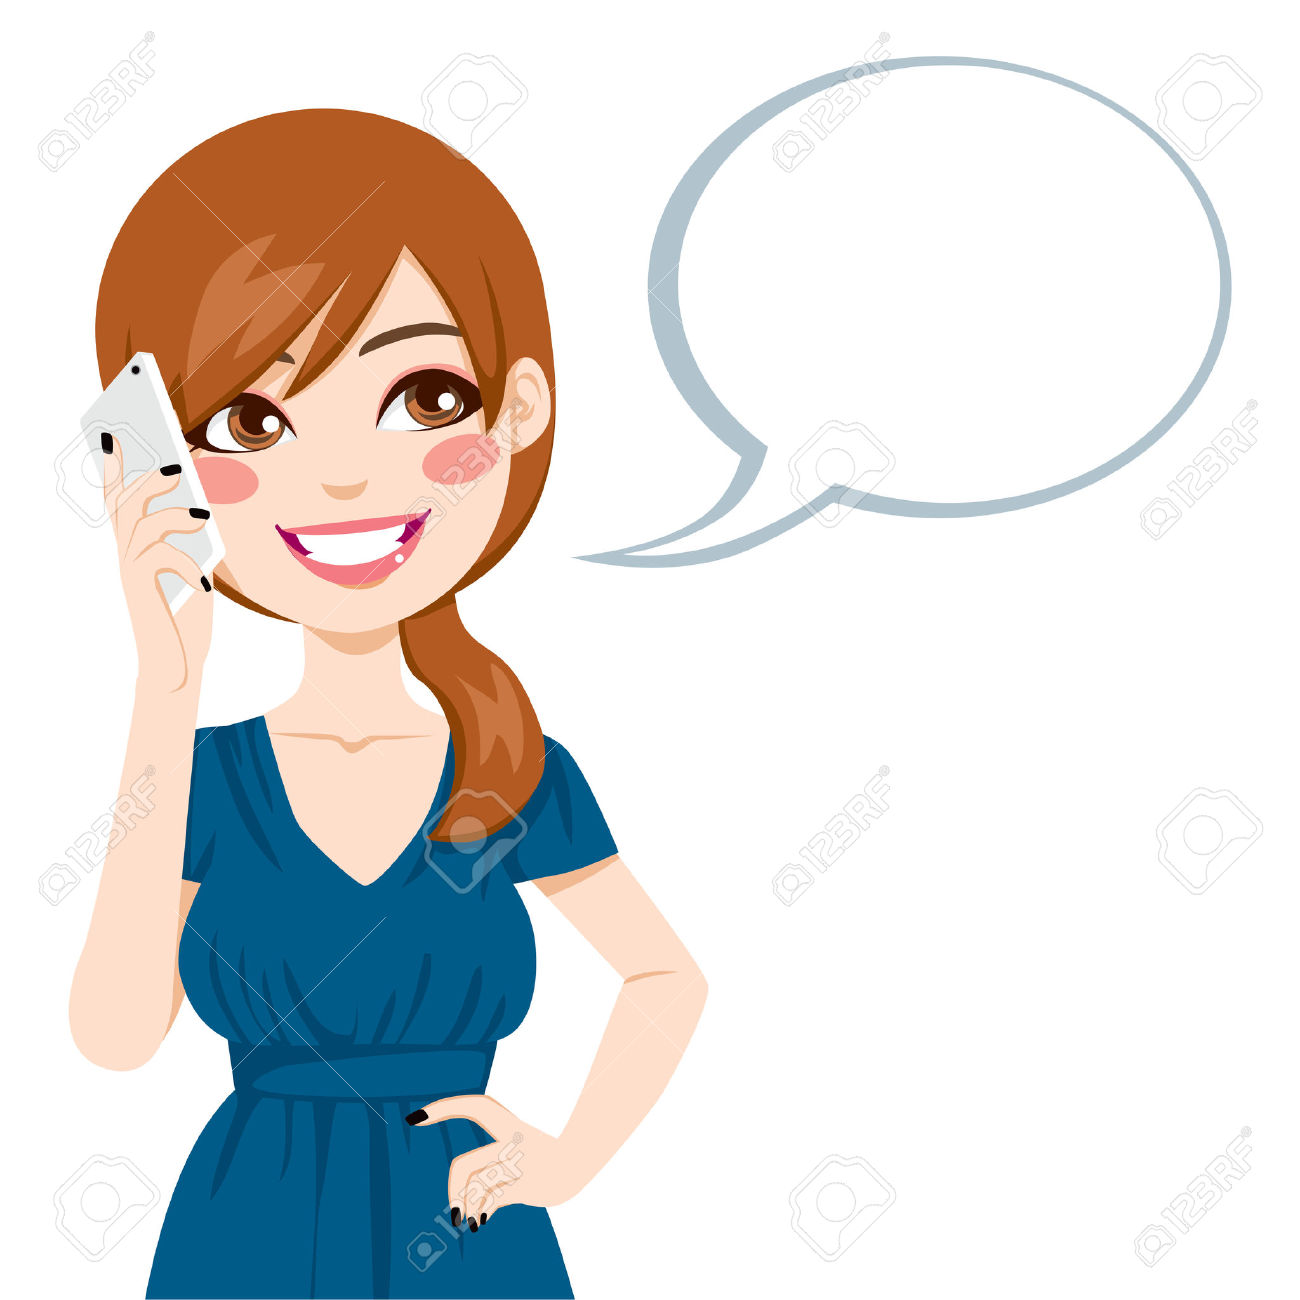 Woman on cell phone clipart free clip art freeuse Phone Call Images | Free download best Phone Call Images on ... clip art freeuse